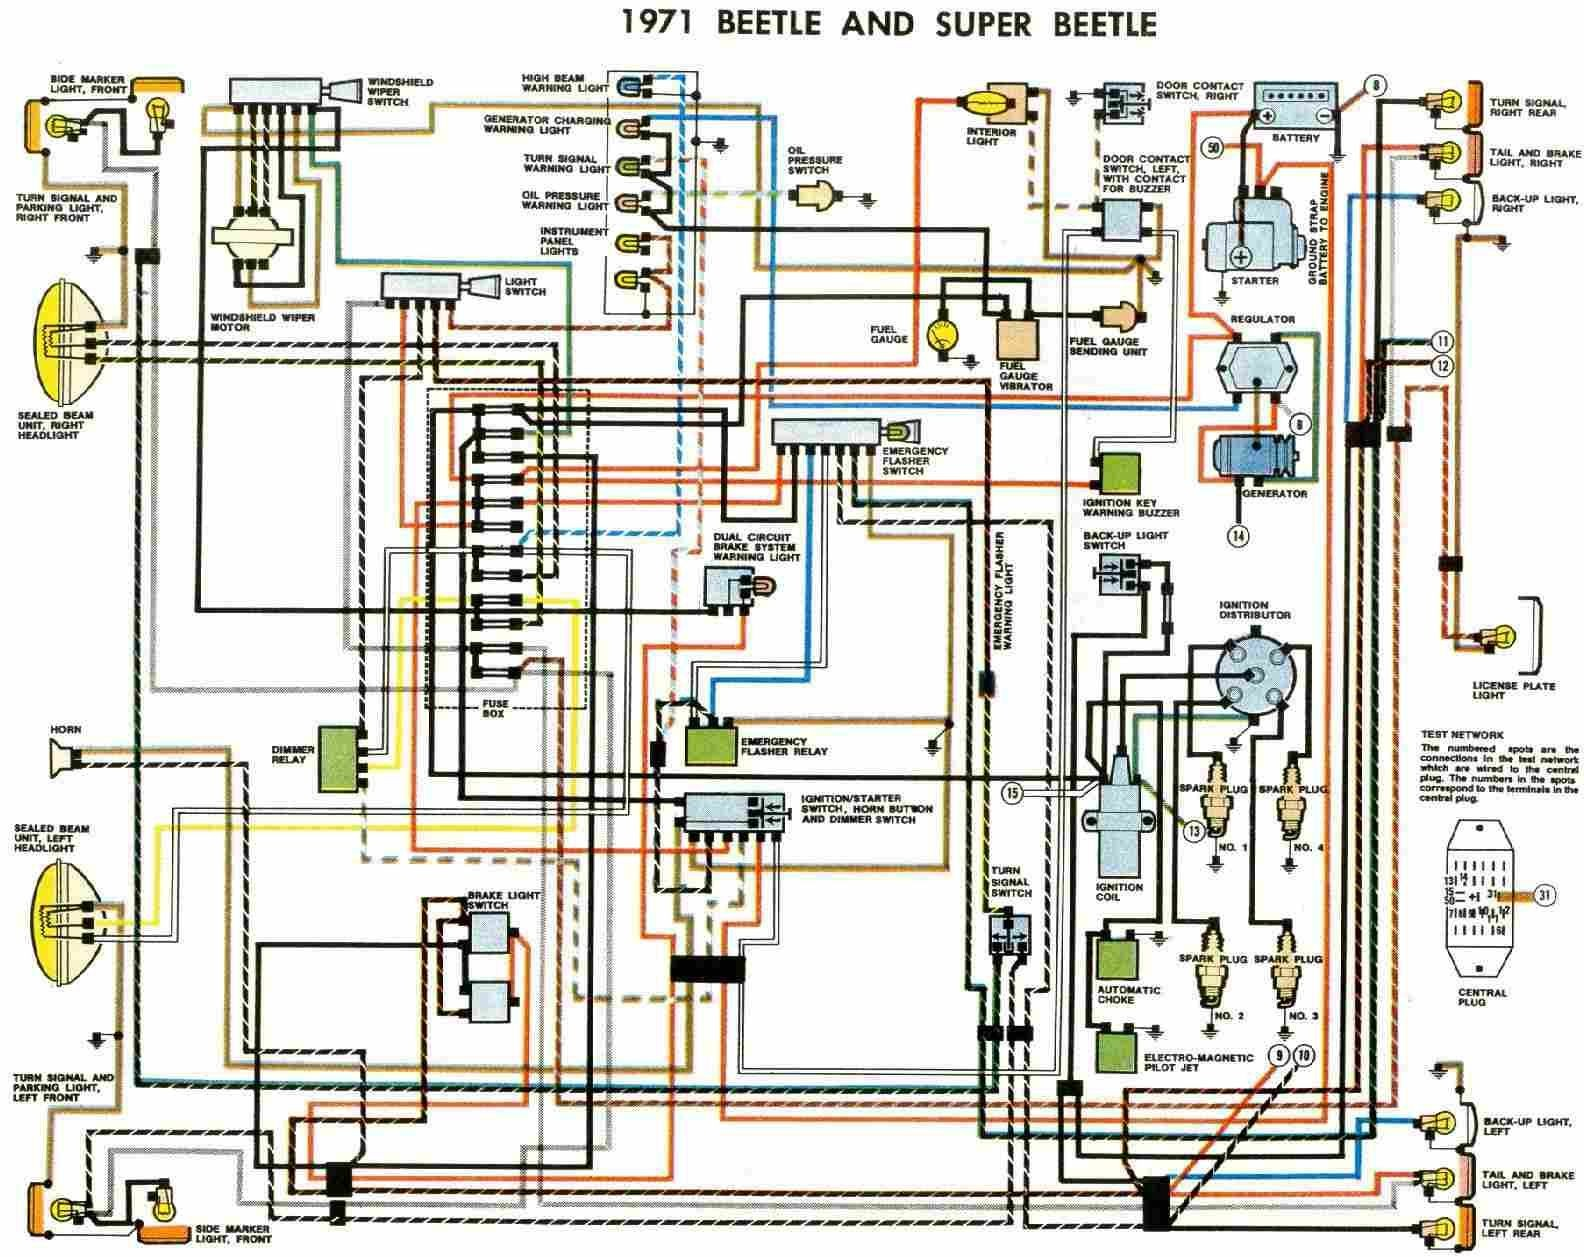 vw type 1 engine diagram free auto wiring diagram 1971 vw beetle and rh  detoxicrecenze com 1967 VW Beetle Engine Diagram 2000 VW Beetle Engine  Diagram